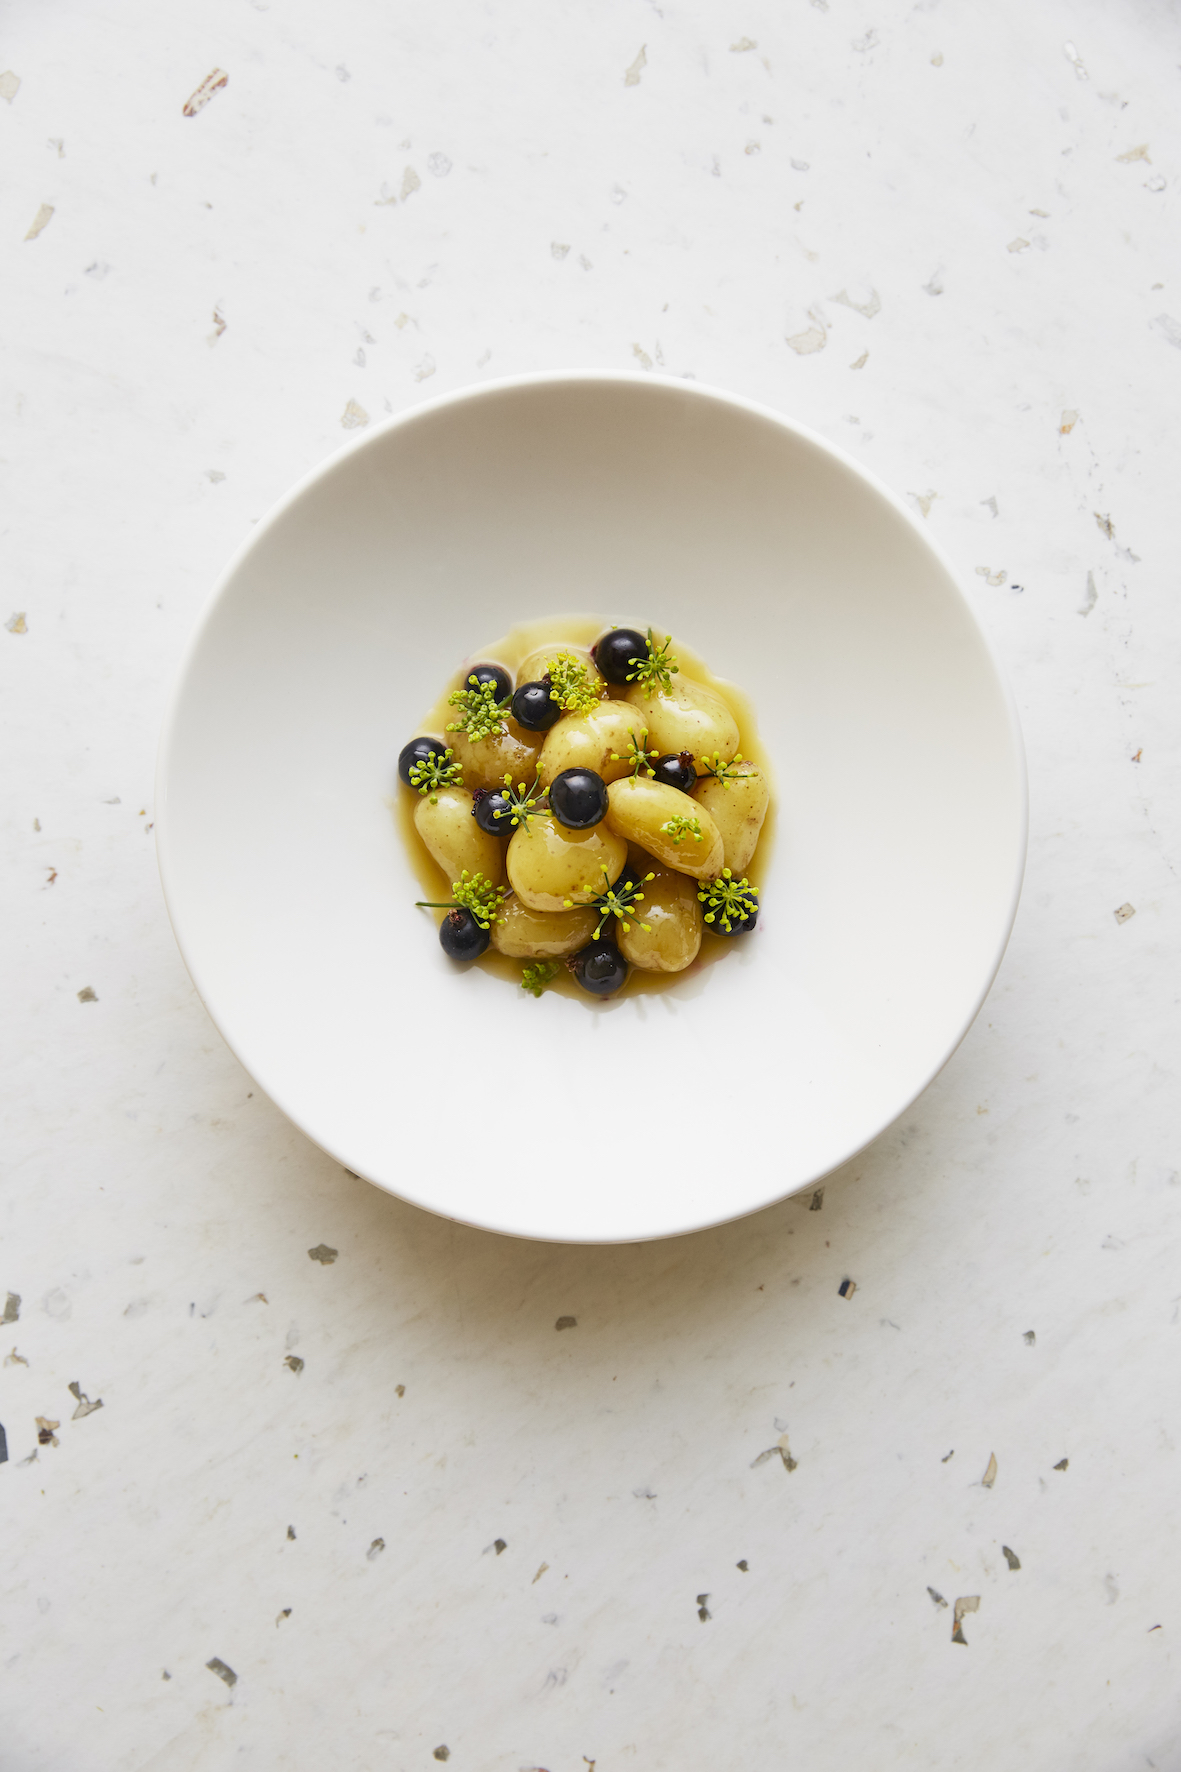 Cub London, Linzer potatoes, blackberries and fennel flower - served in a round white bowl